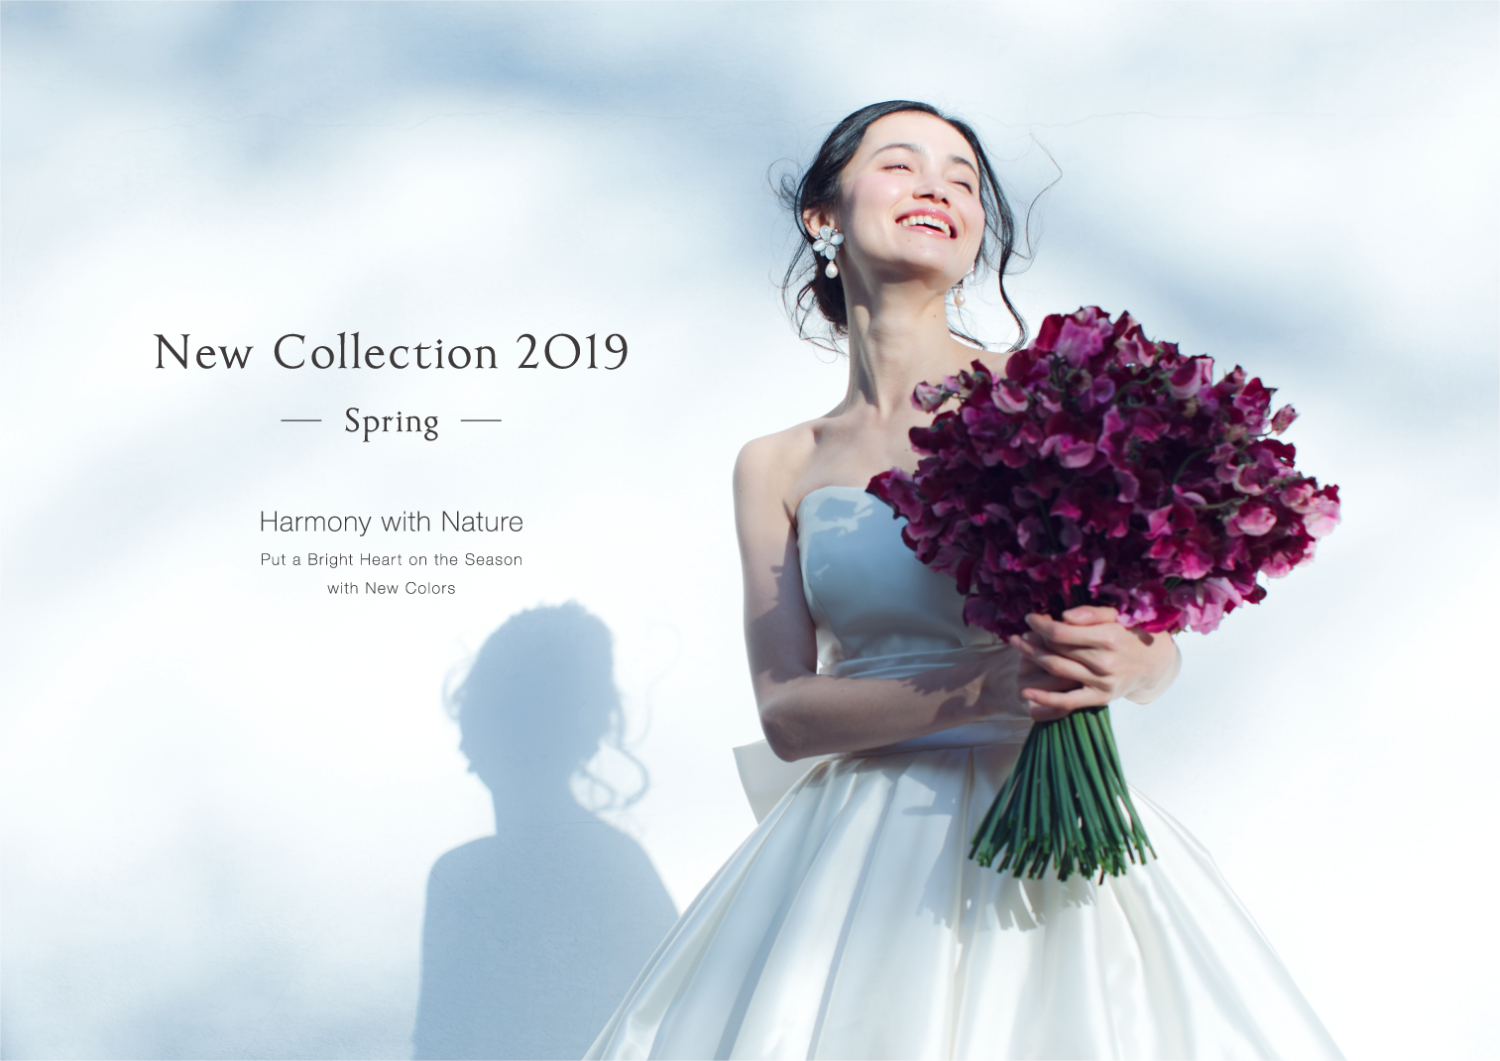 「New Collection 2019 Spring」リリースしました。